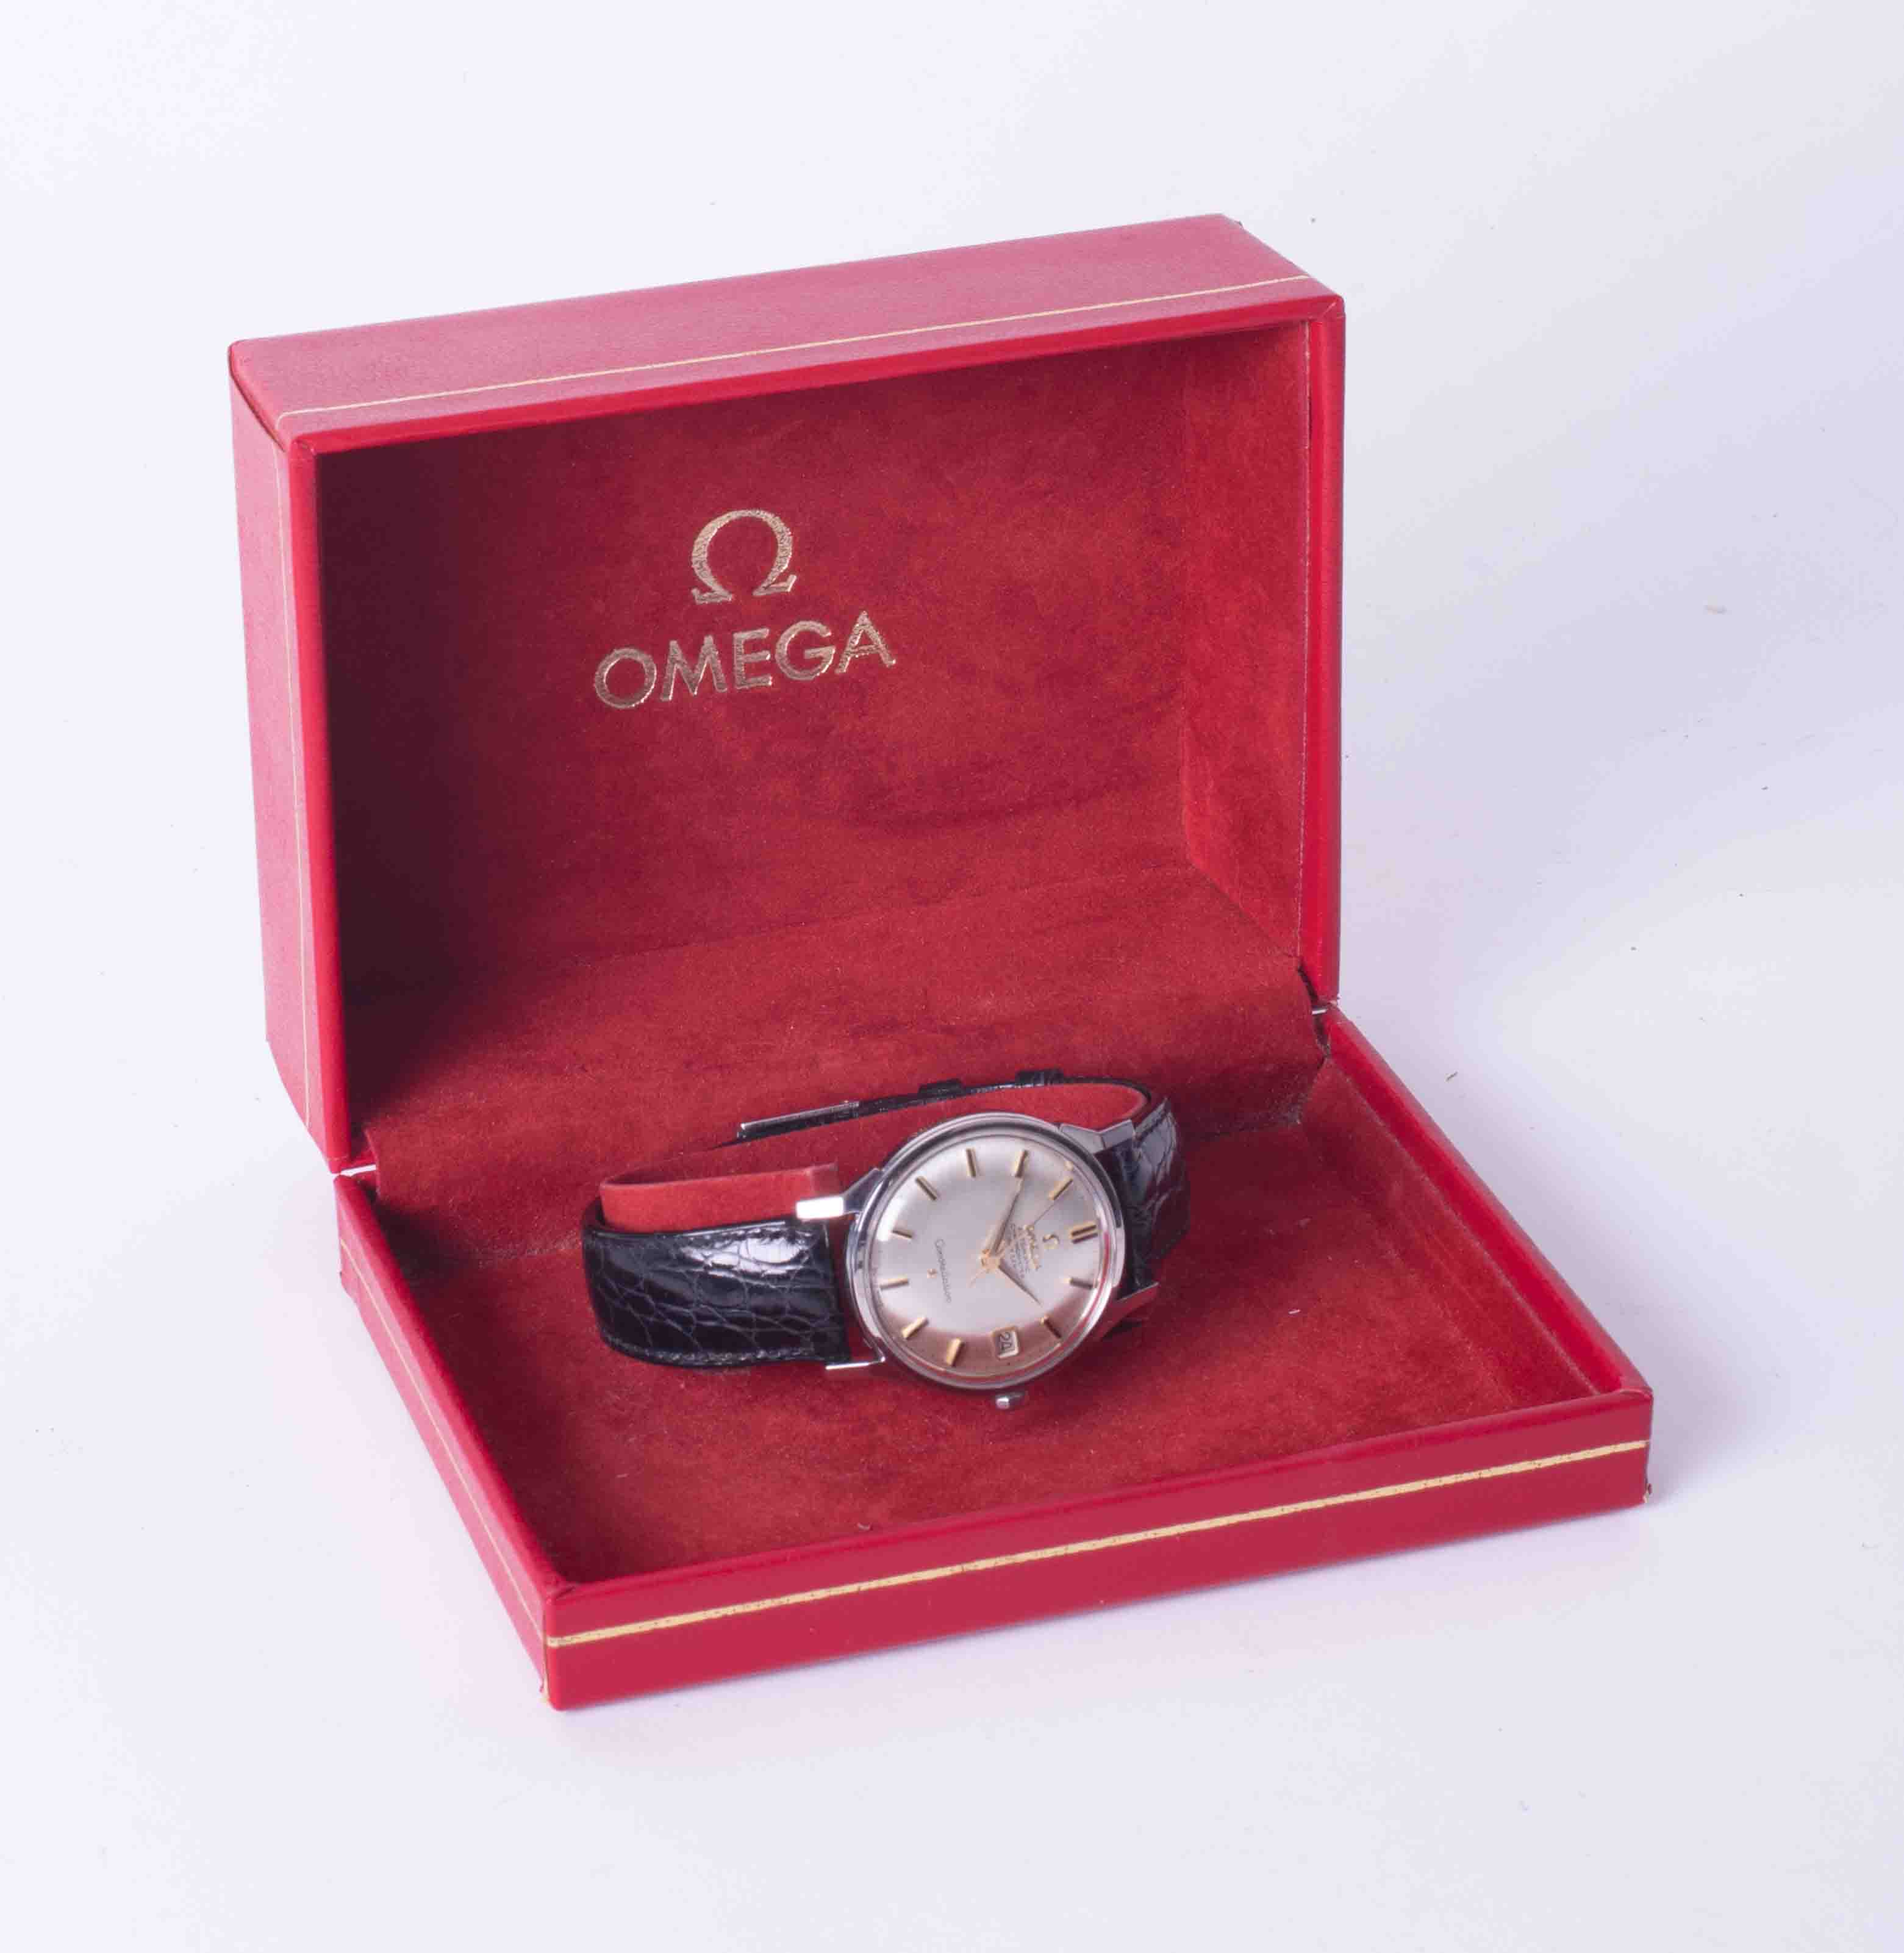 Omega, a gents stainless steel automatic chronometer Constellation wrist watch with date, silvered - Image 2 of 2